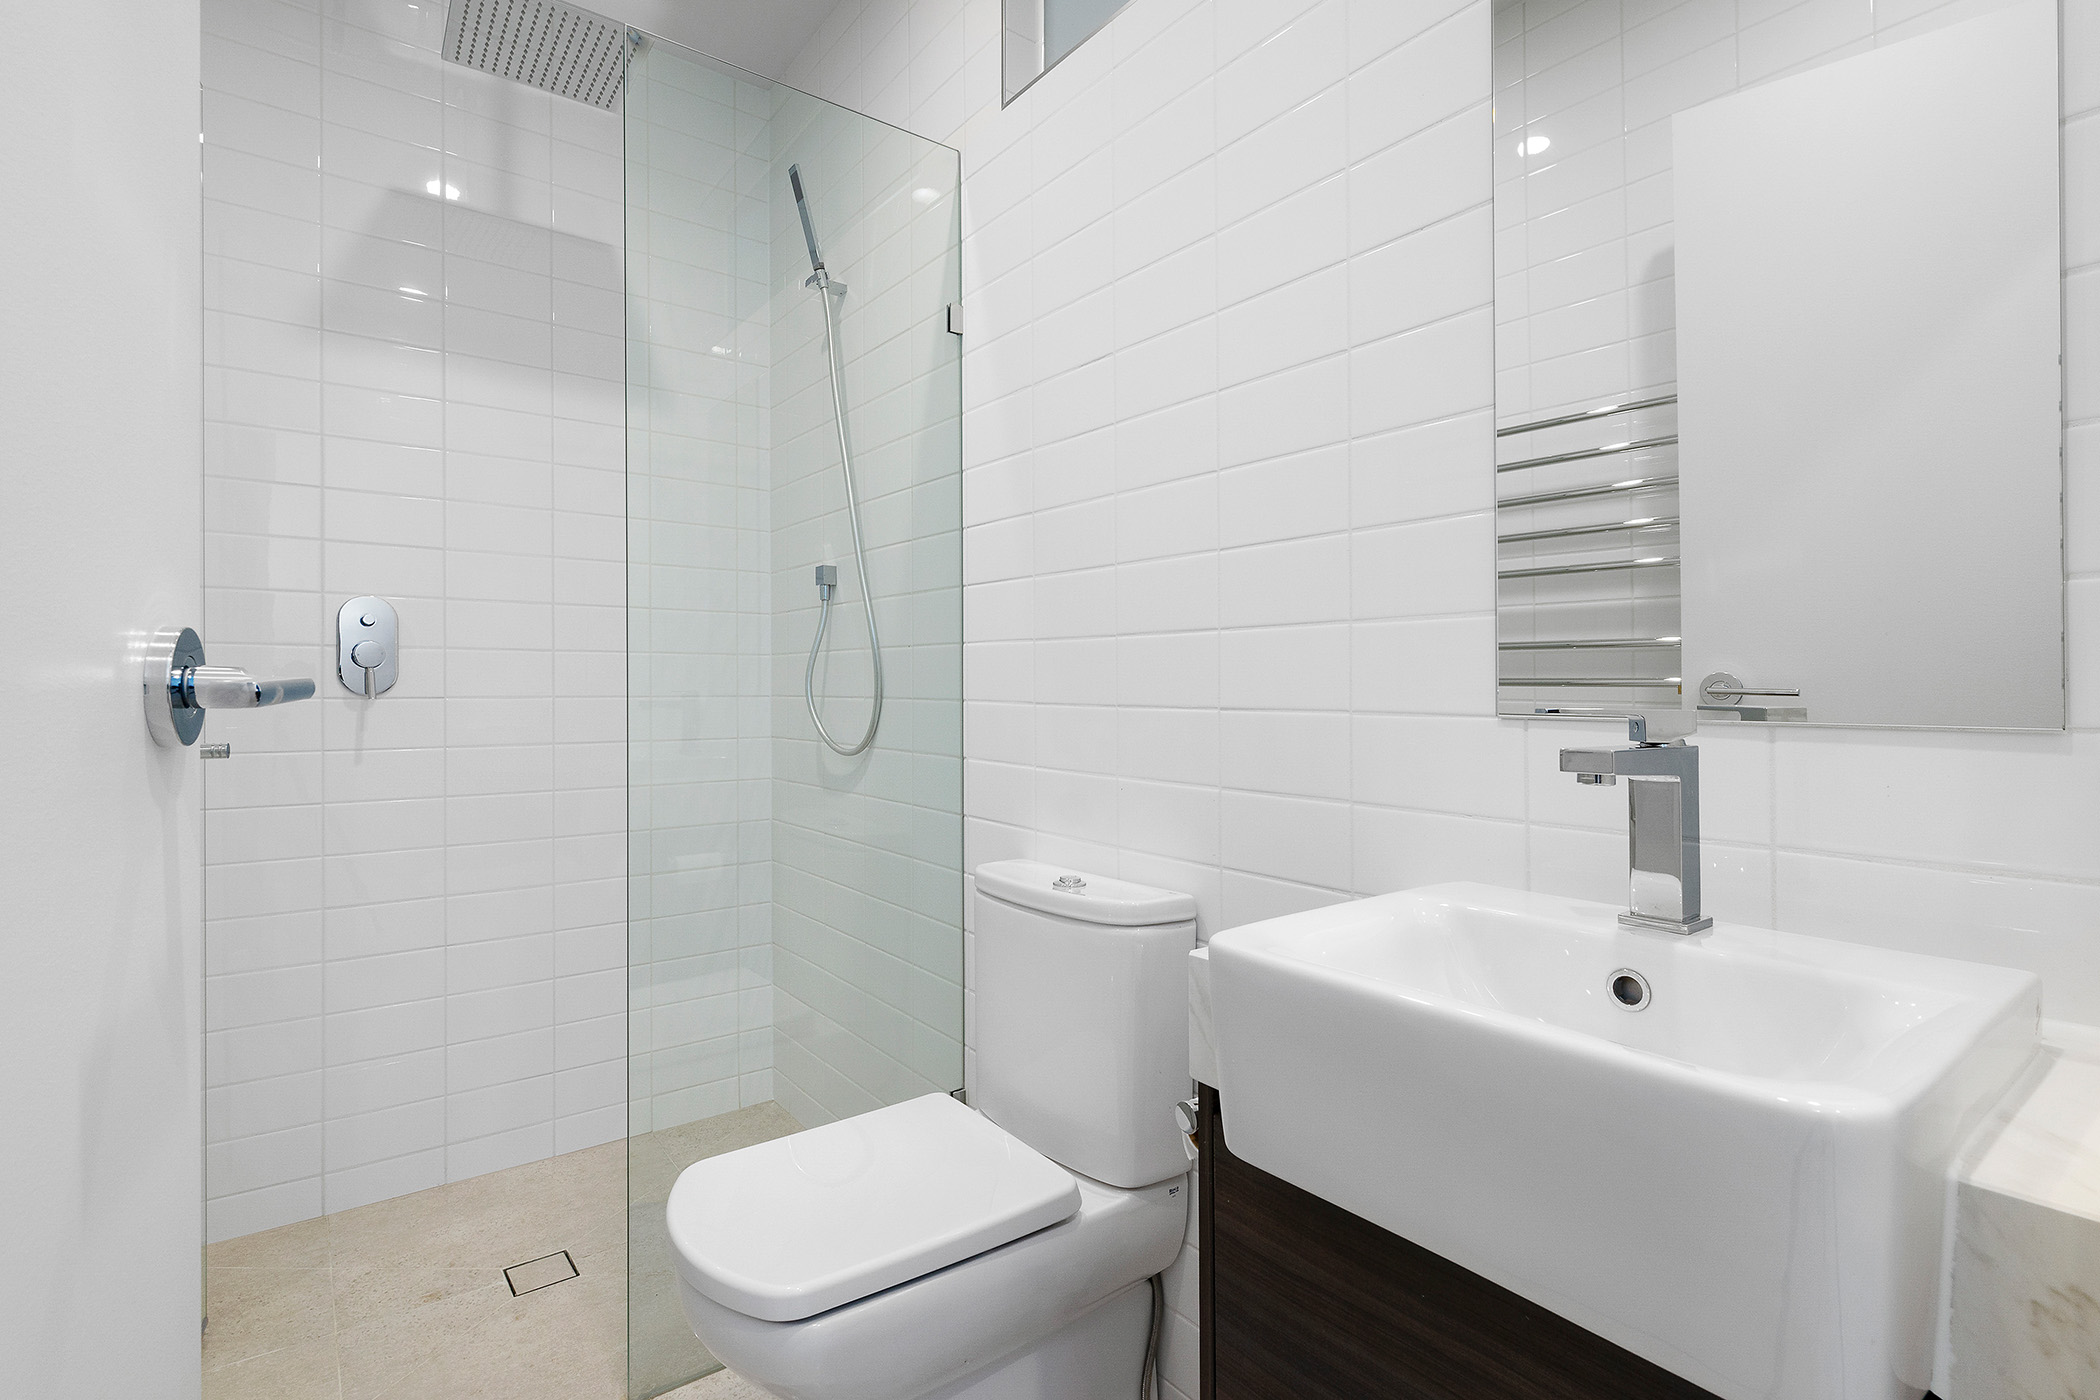 32a-palmerston-street-carlton-student-accommodation-Melbourne-Bathroom-Unilodgers